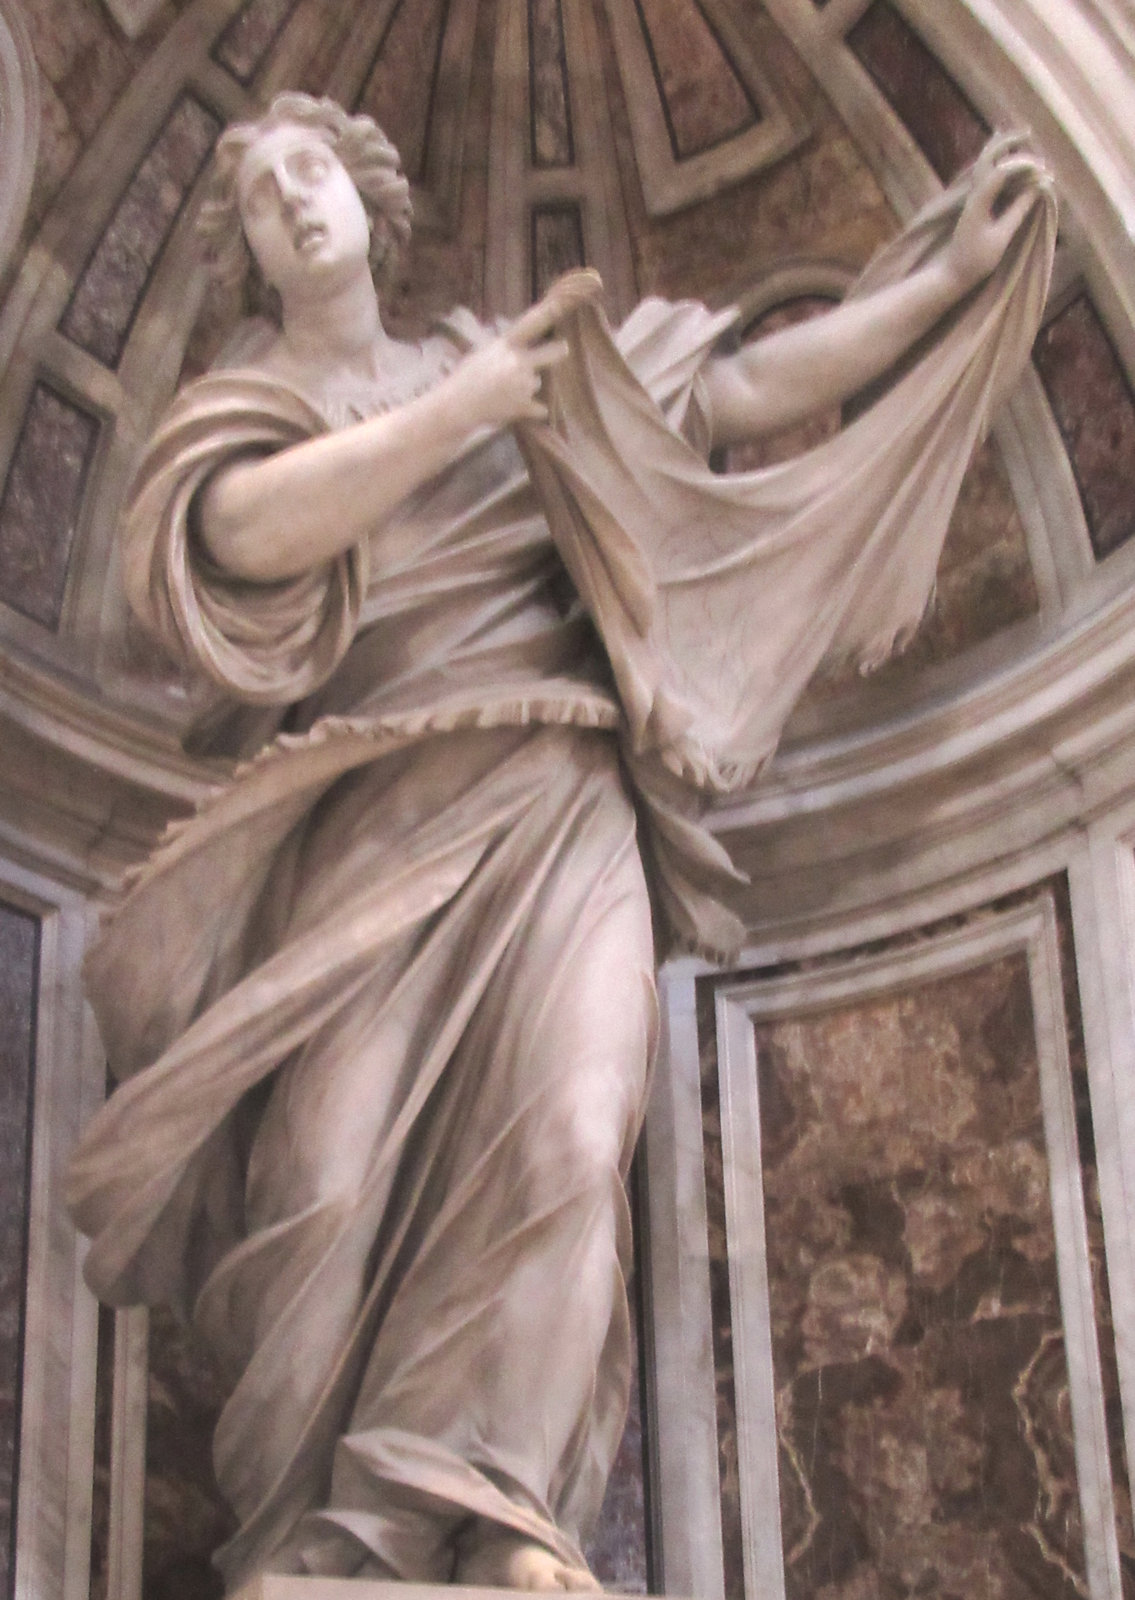 Francesco Mochi: Statue, um 1640, in der, in der Peterskirche in Rom